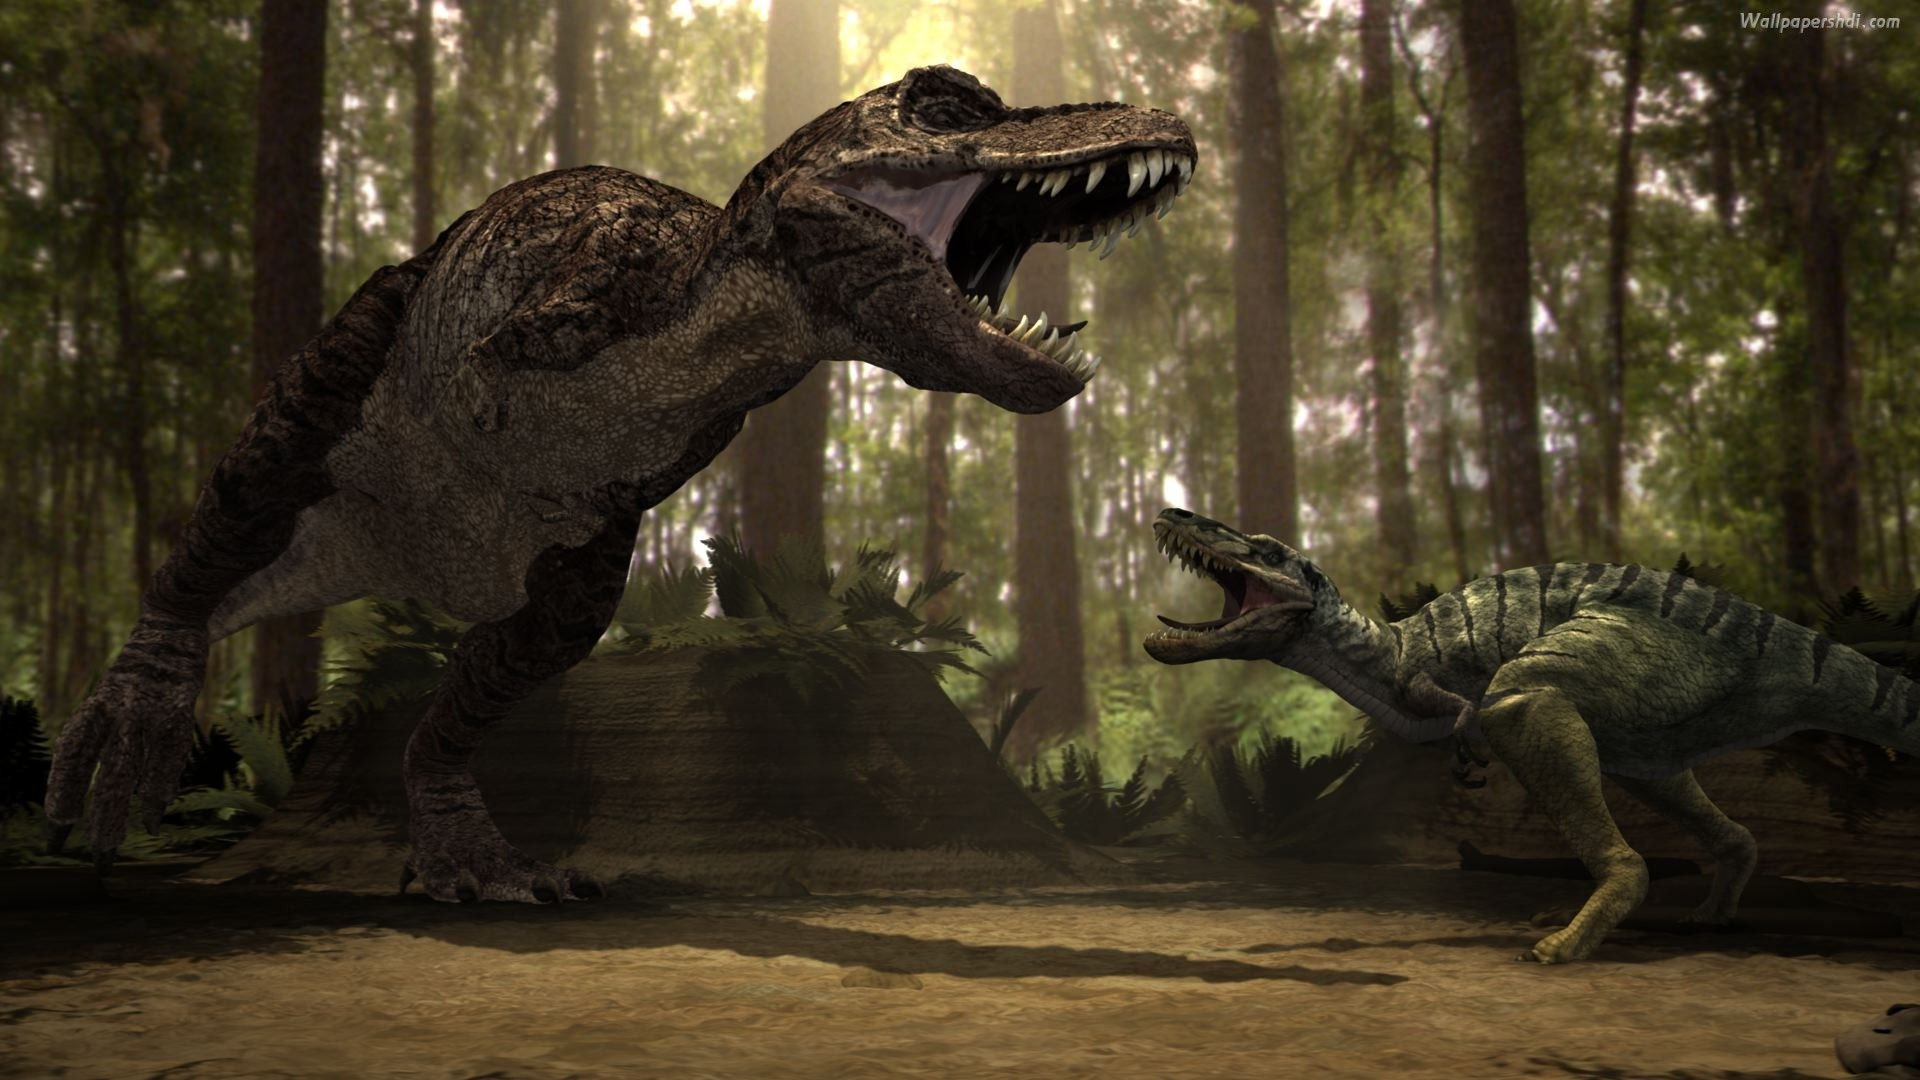 1920x1080 HD Wild Dinosaur T Rex HD 1080p Wallpaper Full Size .